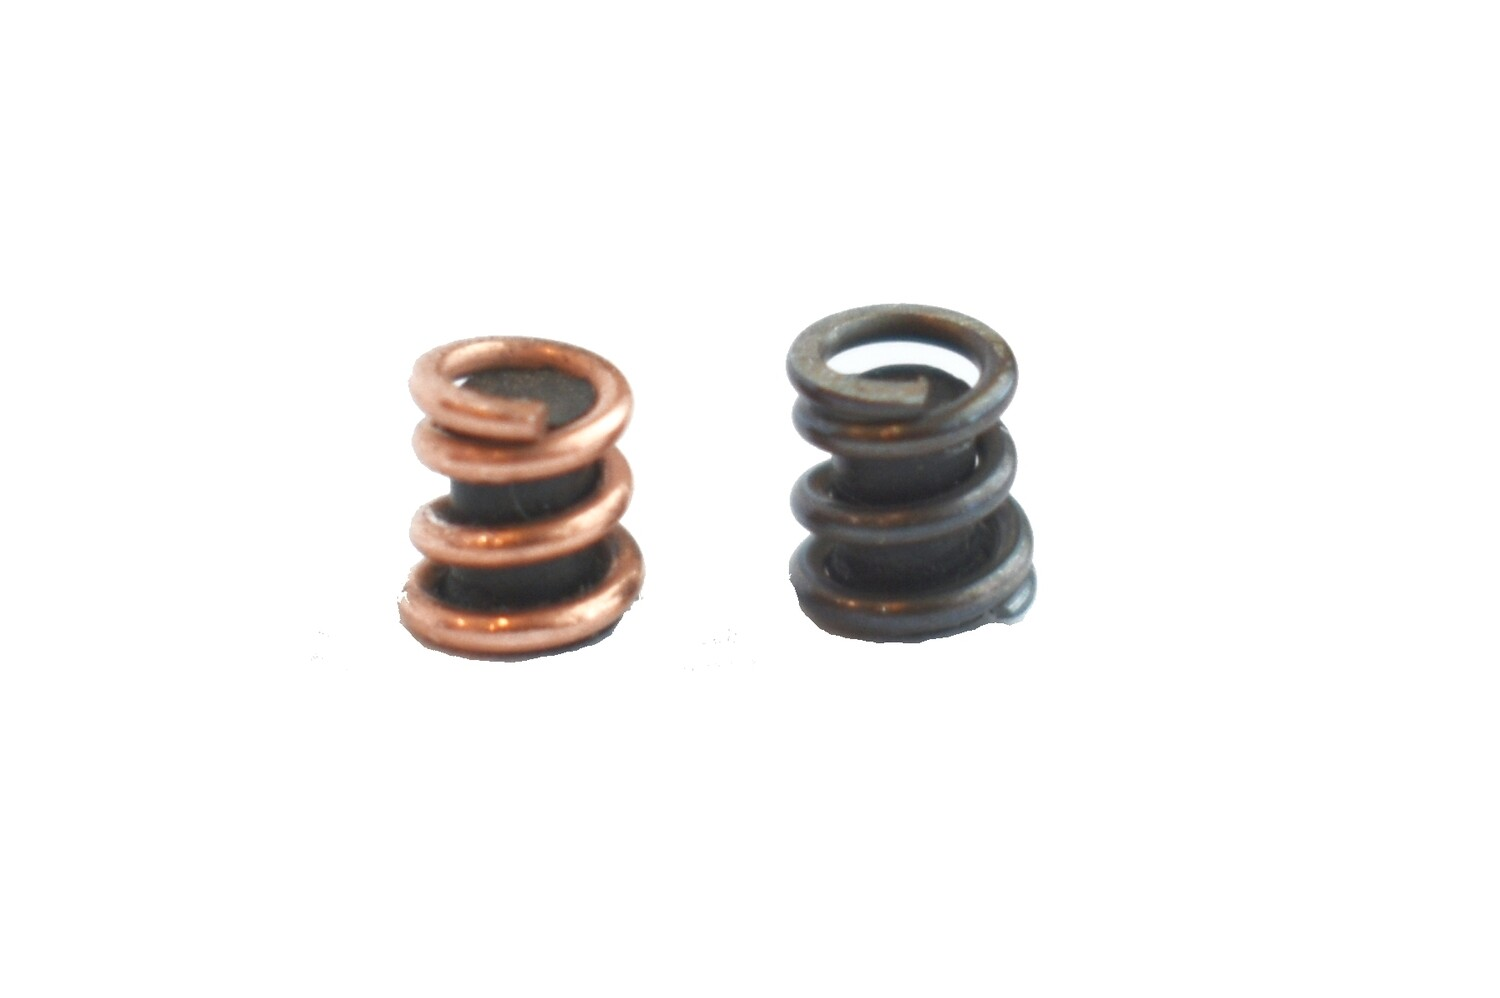 Sprinco 4-Coil M4 Enhanced Extractor Spring Upgrade Kit